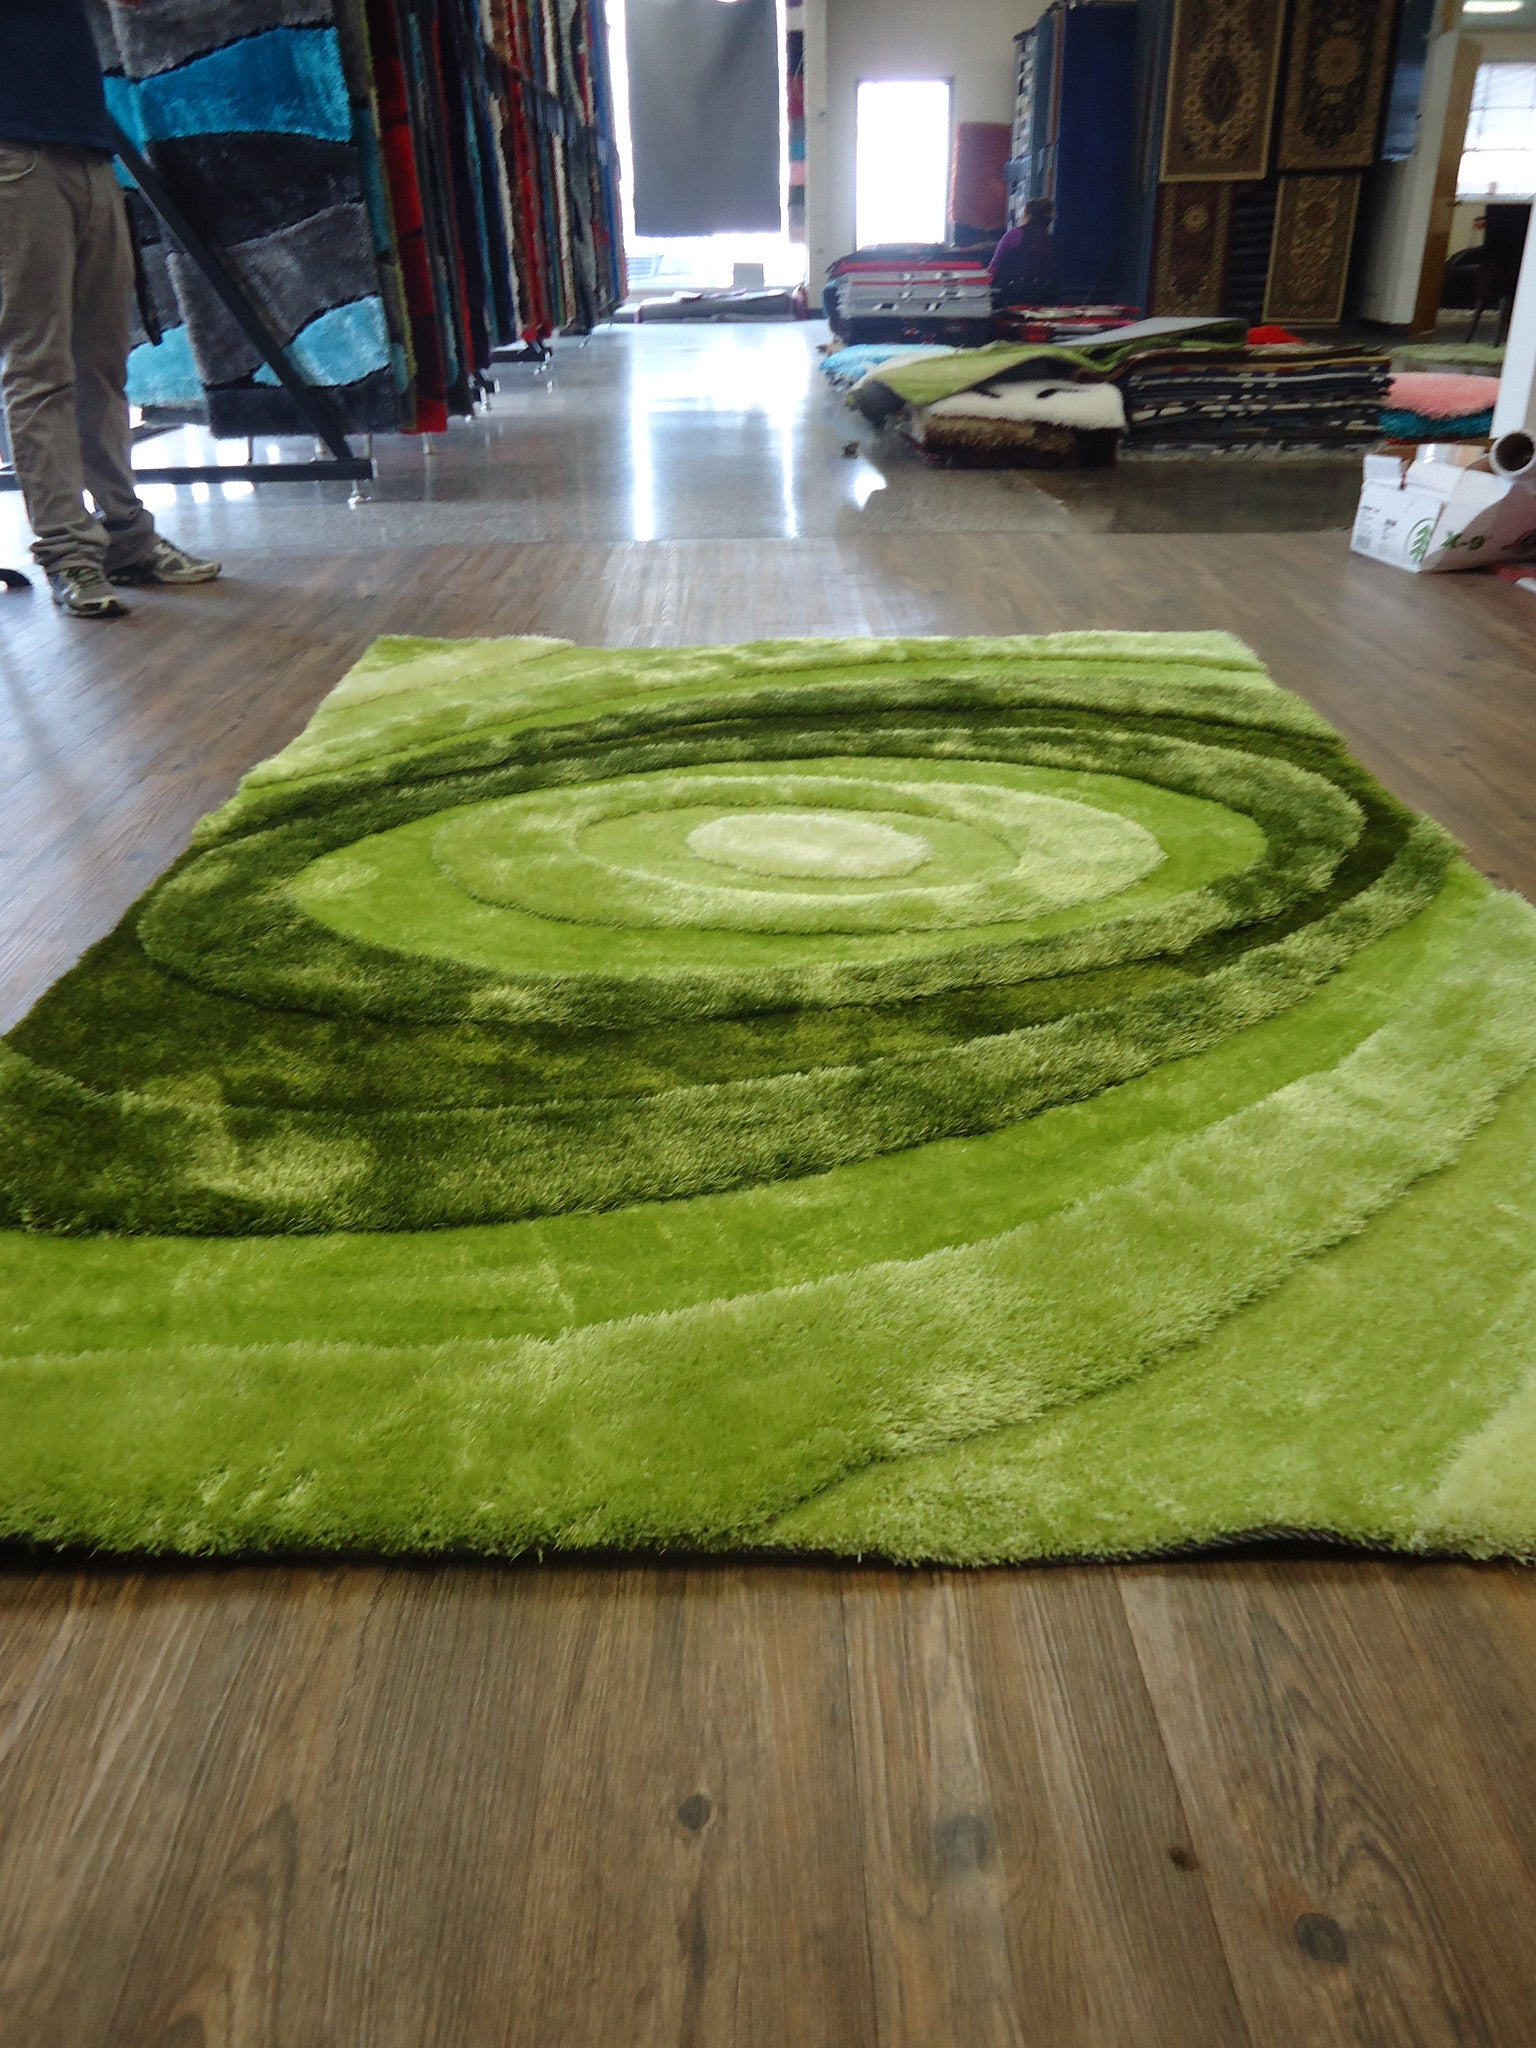 Handmade Vibrant Green 3 Dimensional Shag Area Rug With Hand Carved Design ,